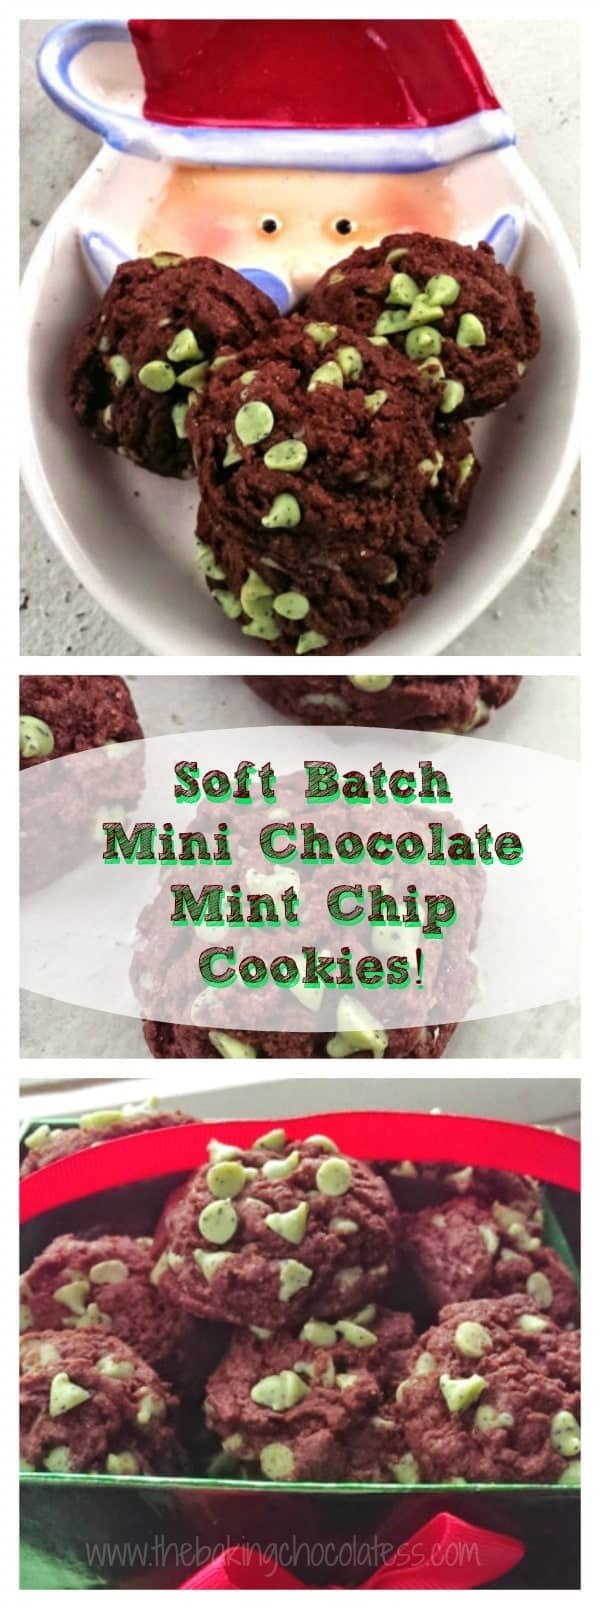 Soft Batch Mini Chocolate Mint Chip Cookies! {Fudgy too!}